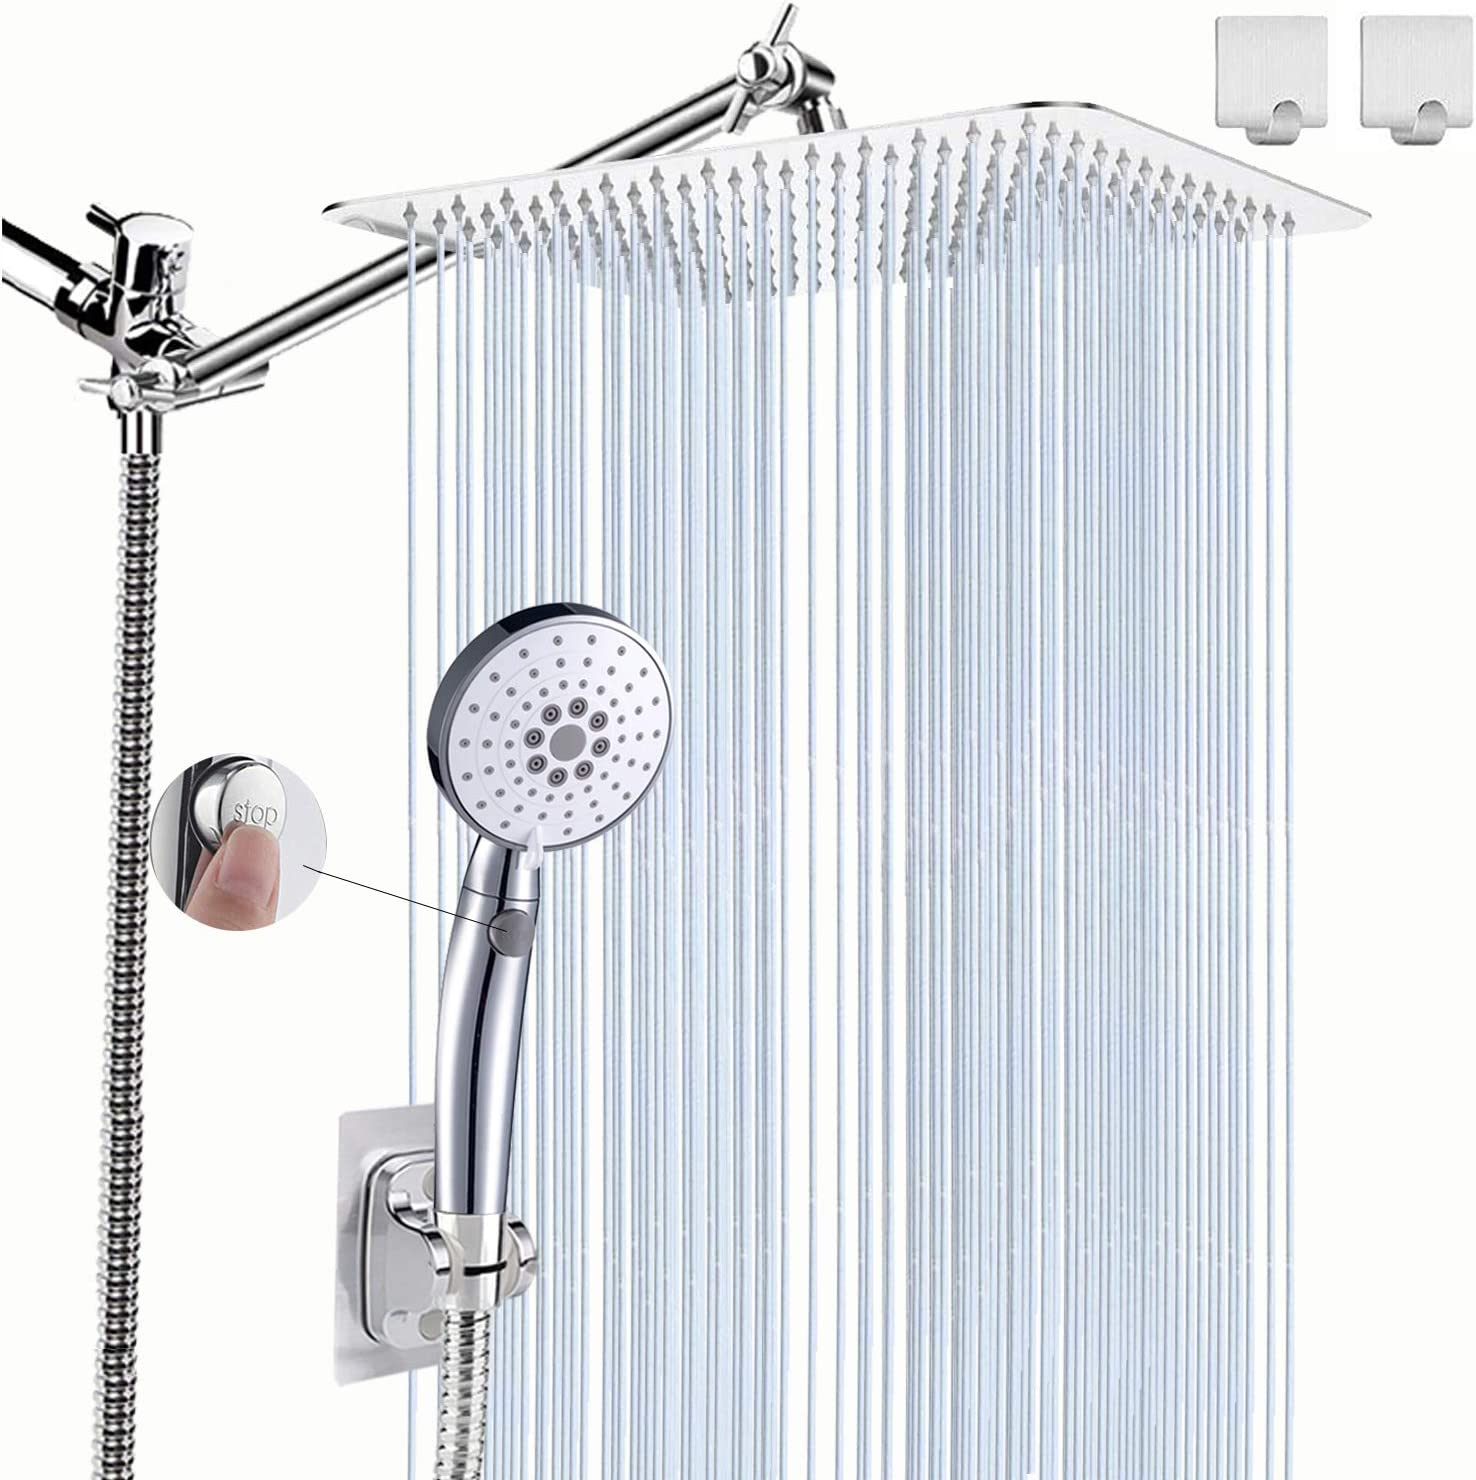 Shower Head Combo, 20'' High Pressure Rainfall Shower Head / 20 Settings  Button Handheld Showerhead Combo with Extension Arm, Shower Holder/20''  Hose, ...